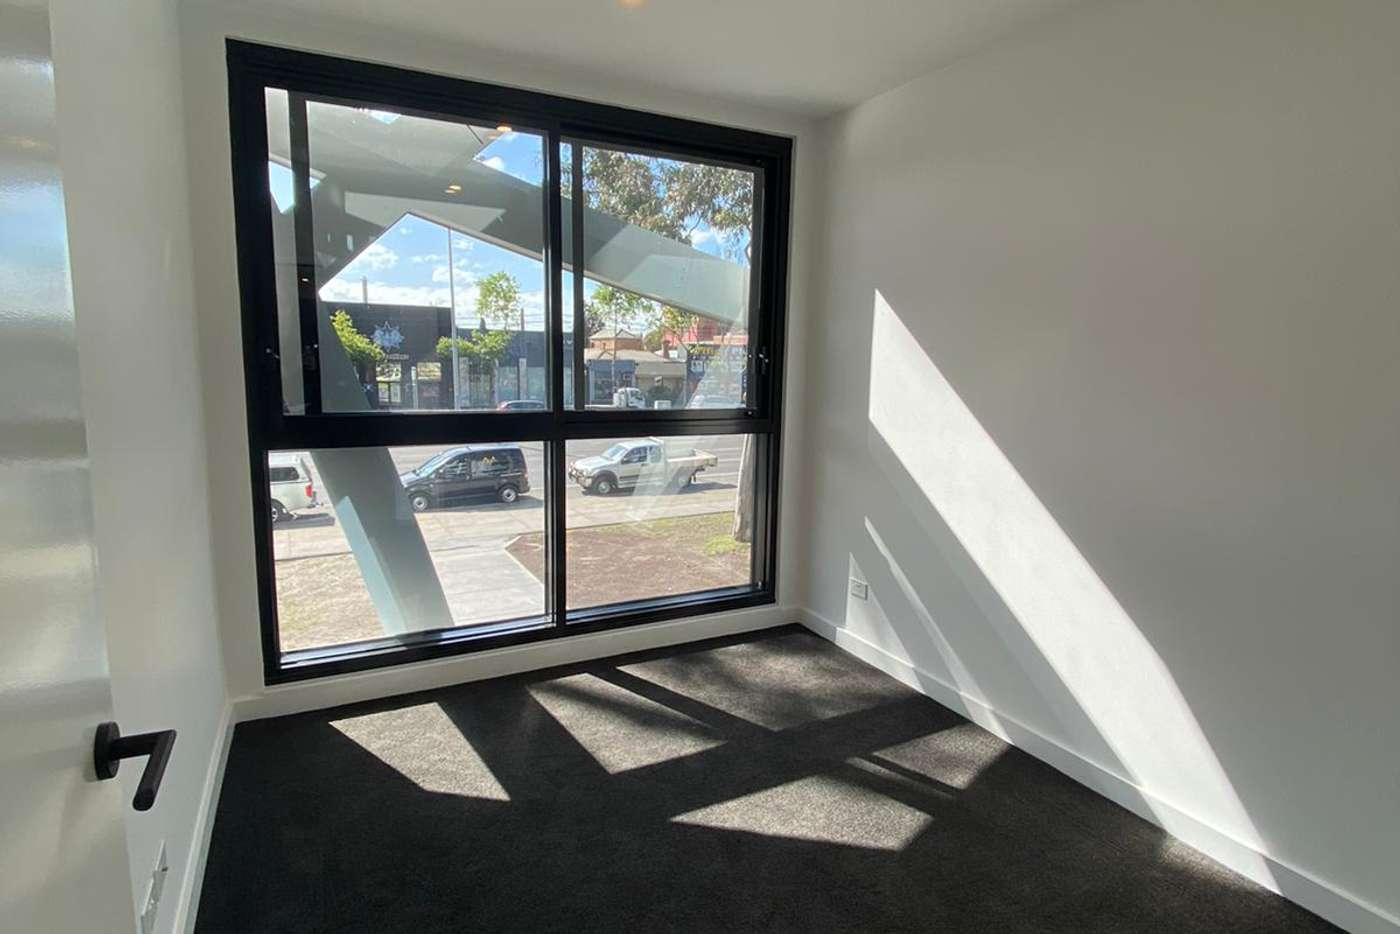 Sixth view of Homely apartment listing, 110/60 Islington Street, Collingwood VIC 3066